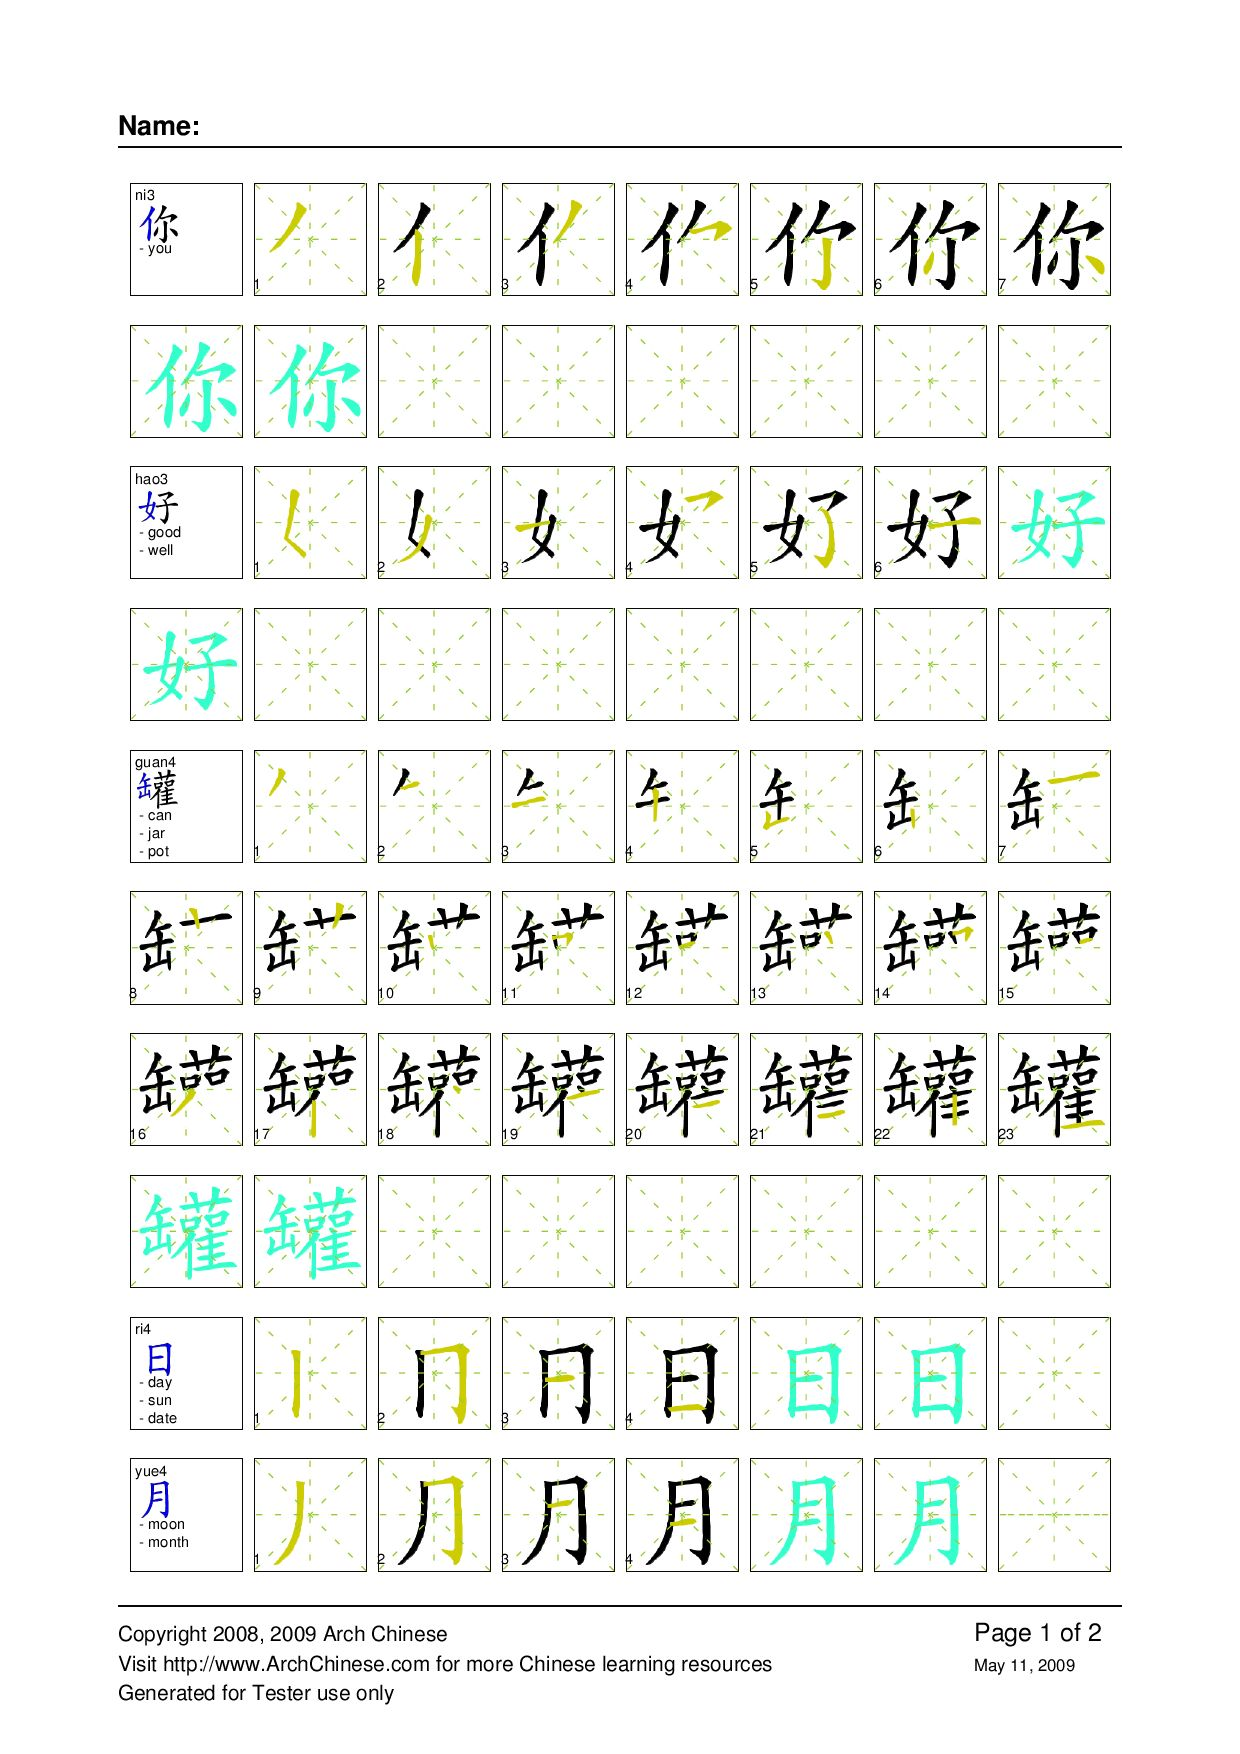 chinese character worksheets by arch chinese issuu. Black Bedroom Furniture Sets. Home Design Ideas